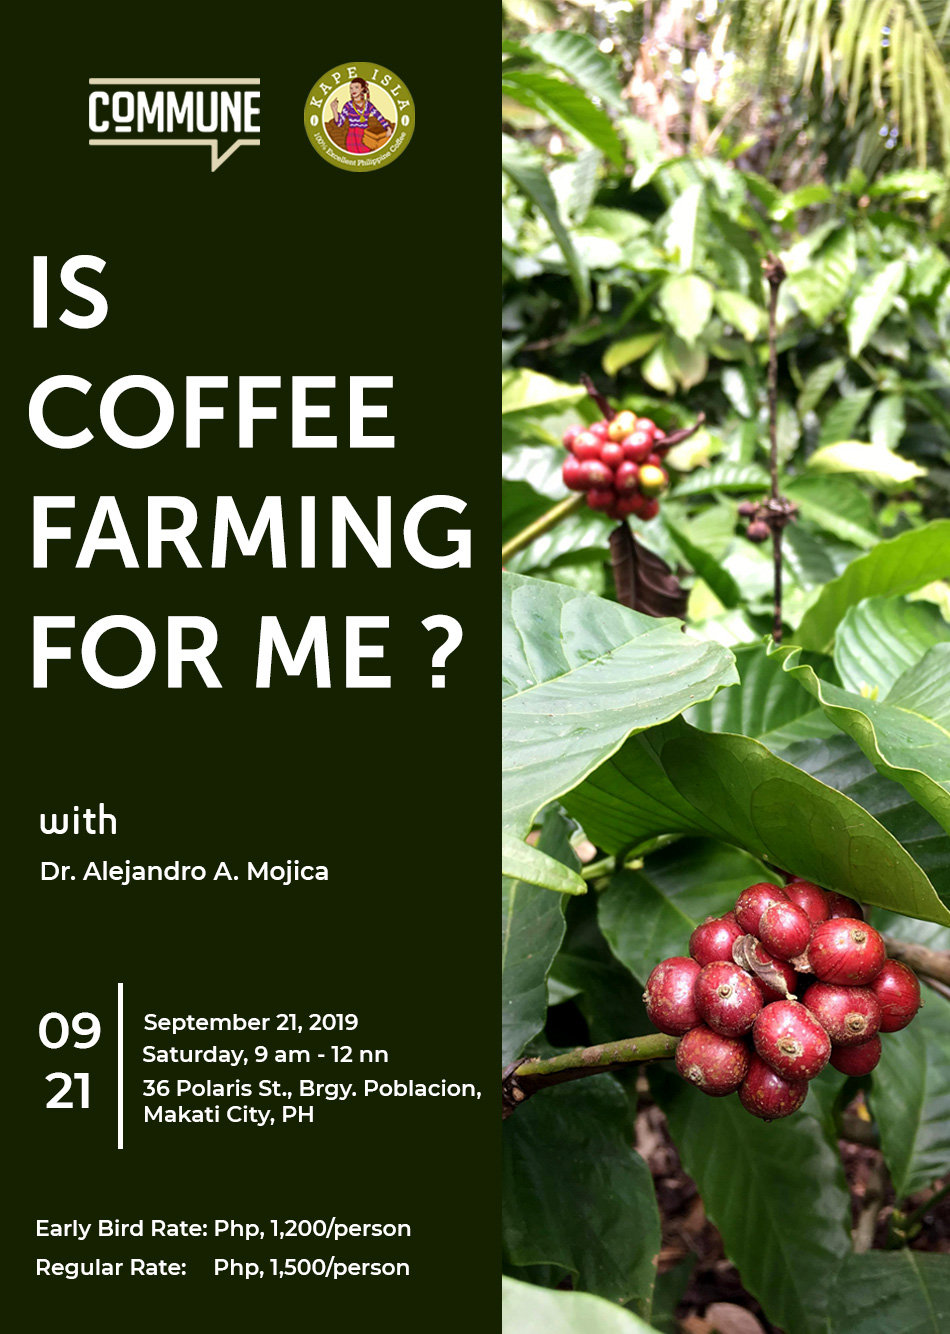 Is Coffee Farming for Me?